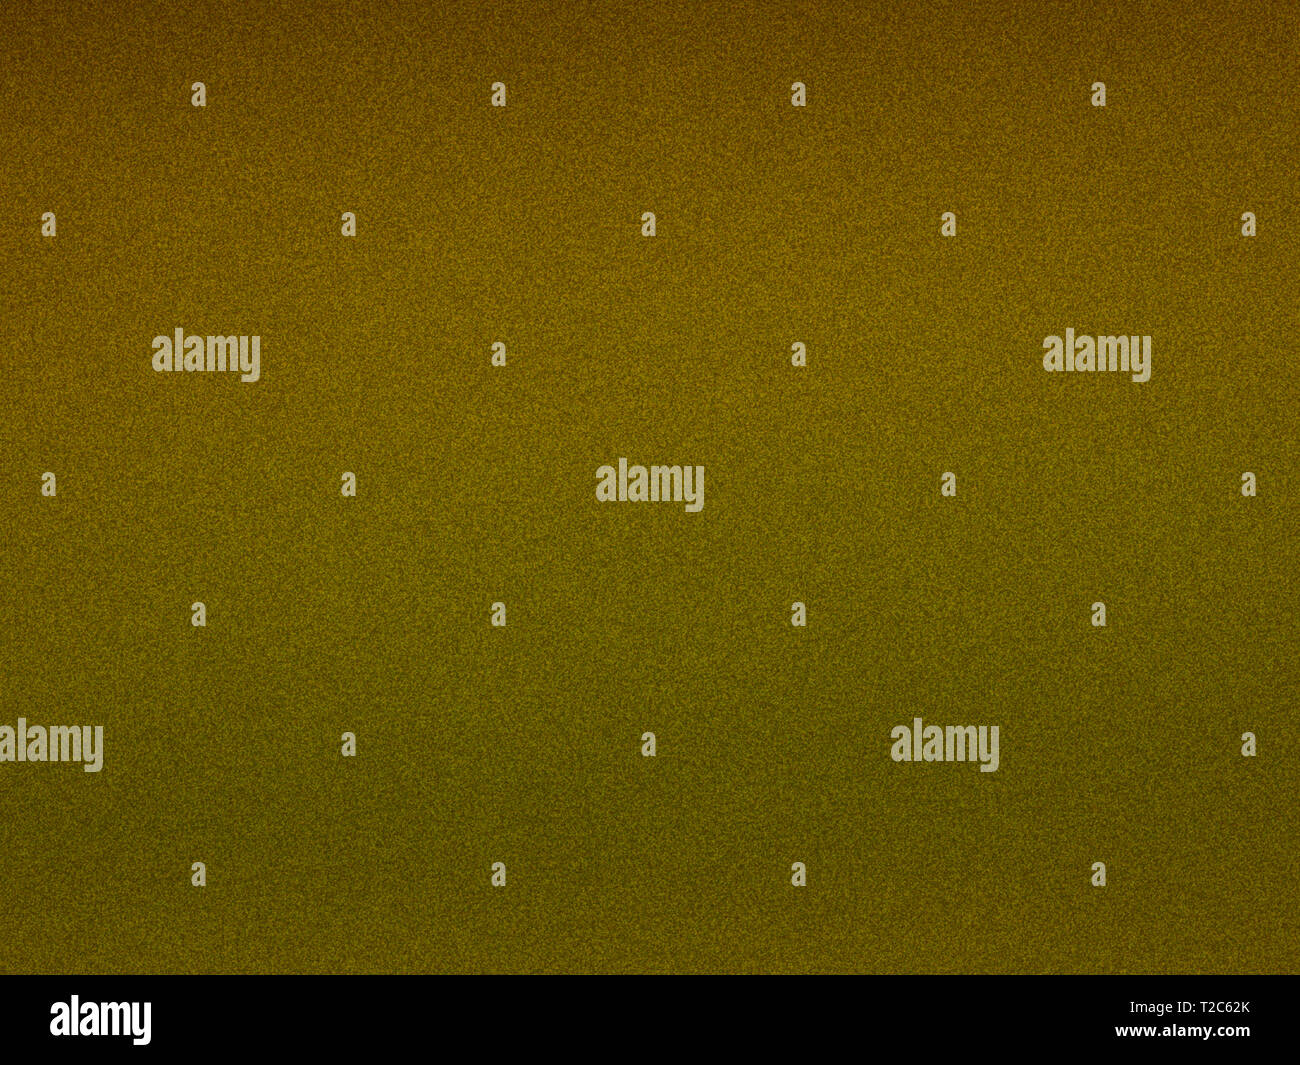 Grainy seamless background. Textured plain yellow color surface. - Stock Image